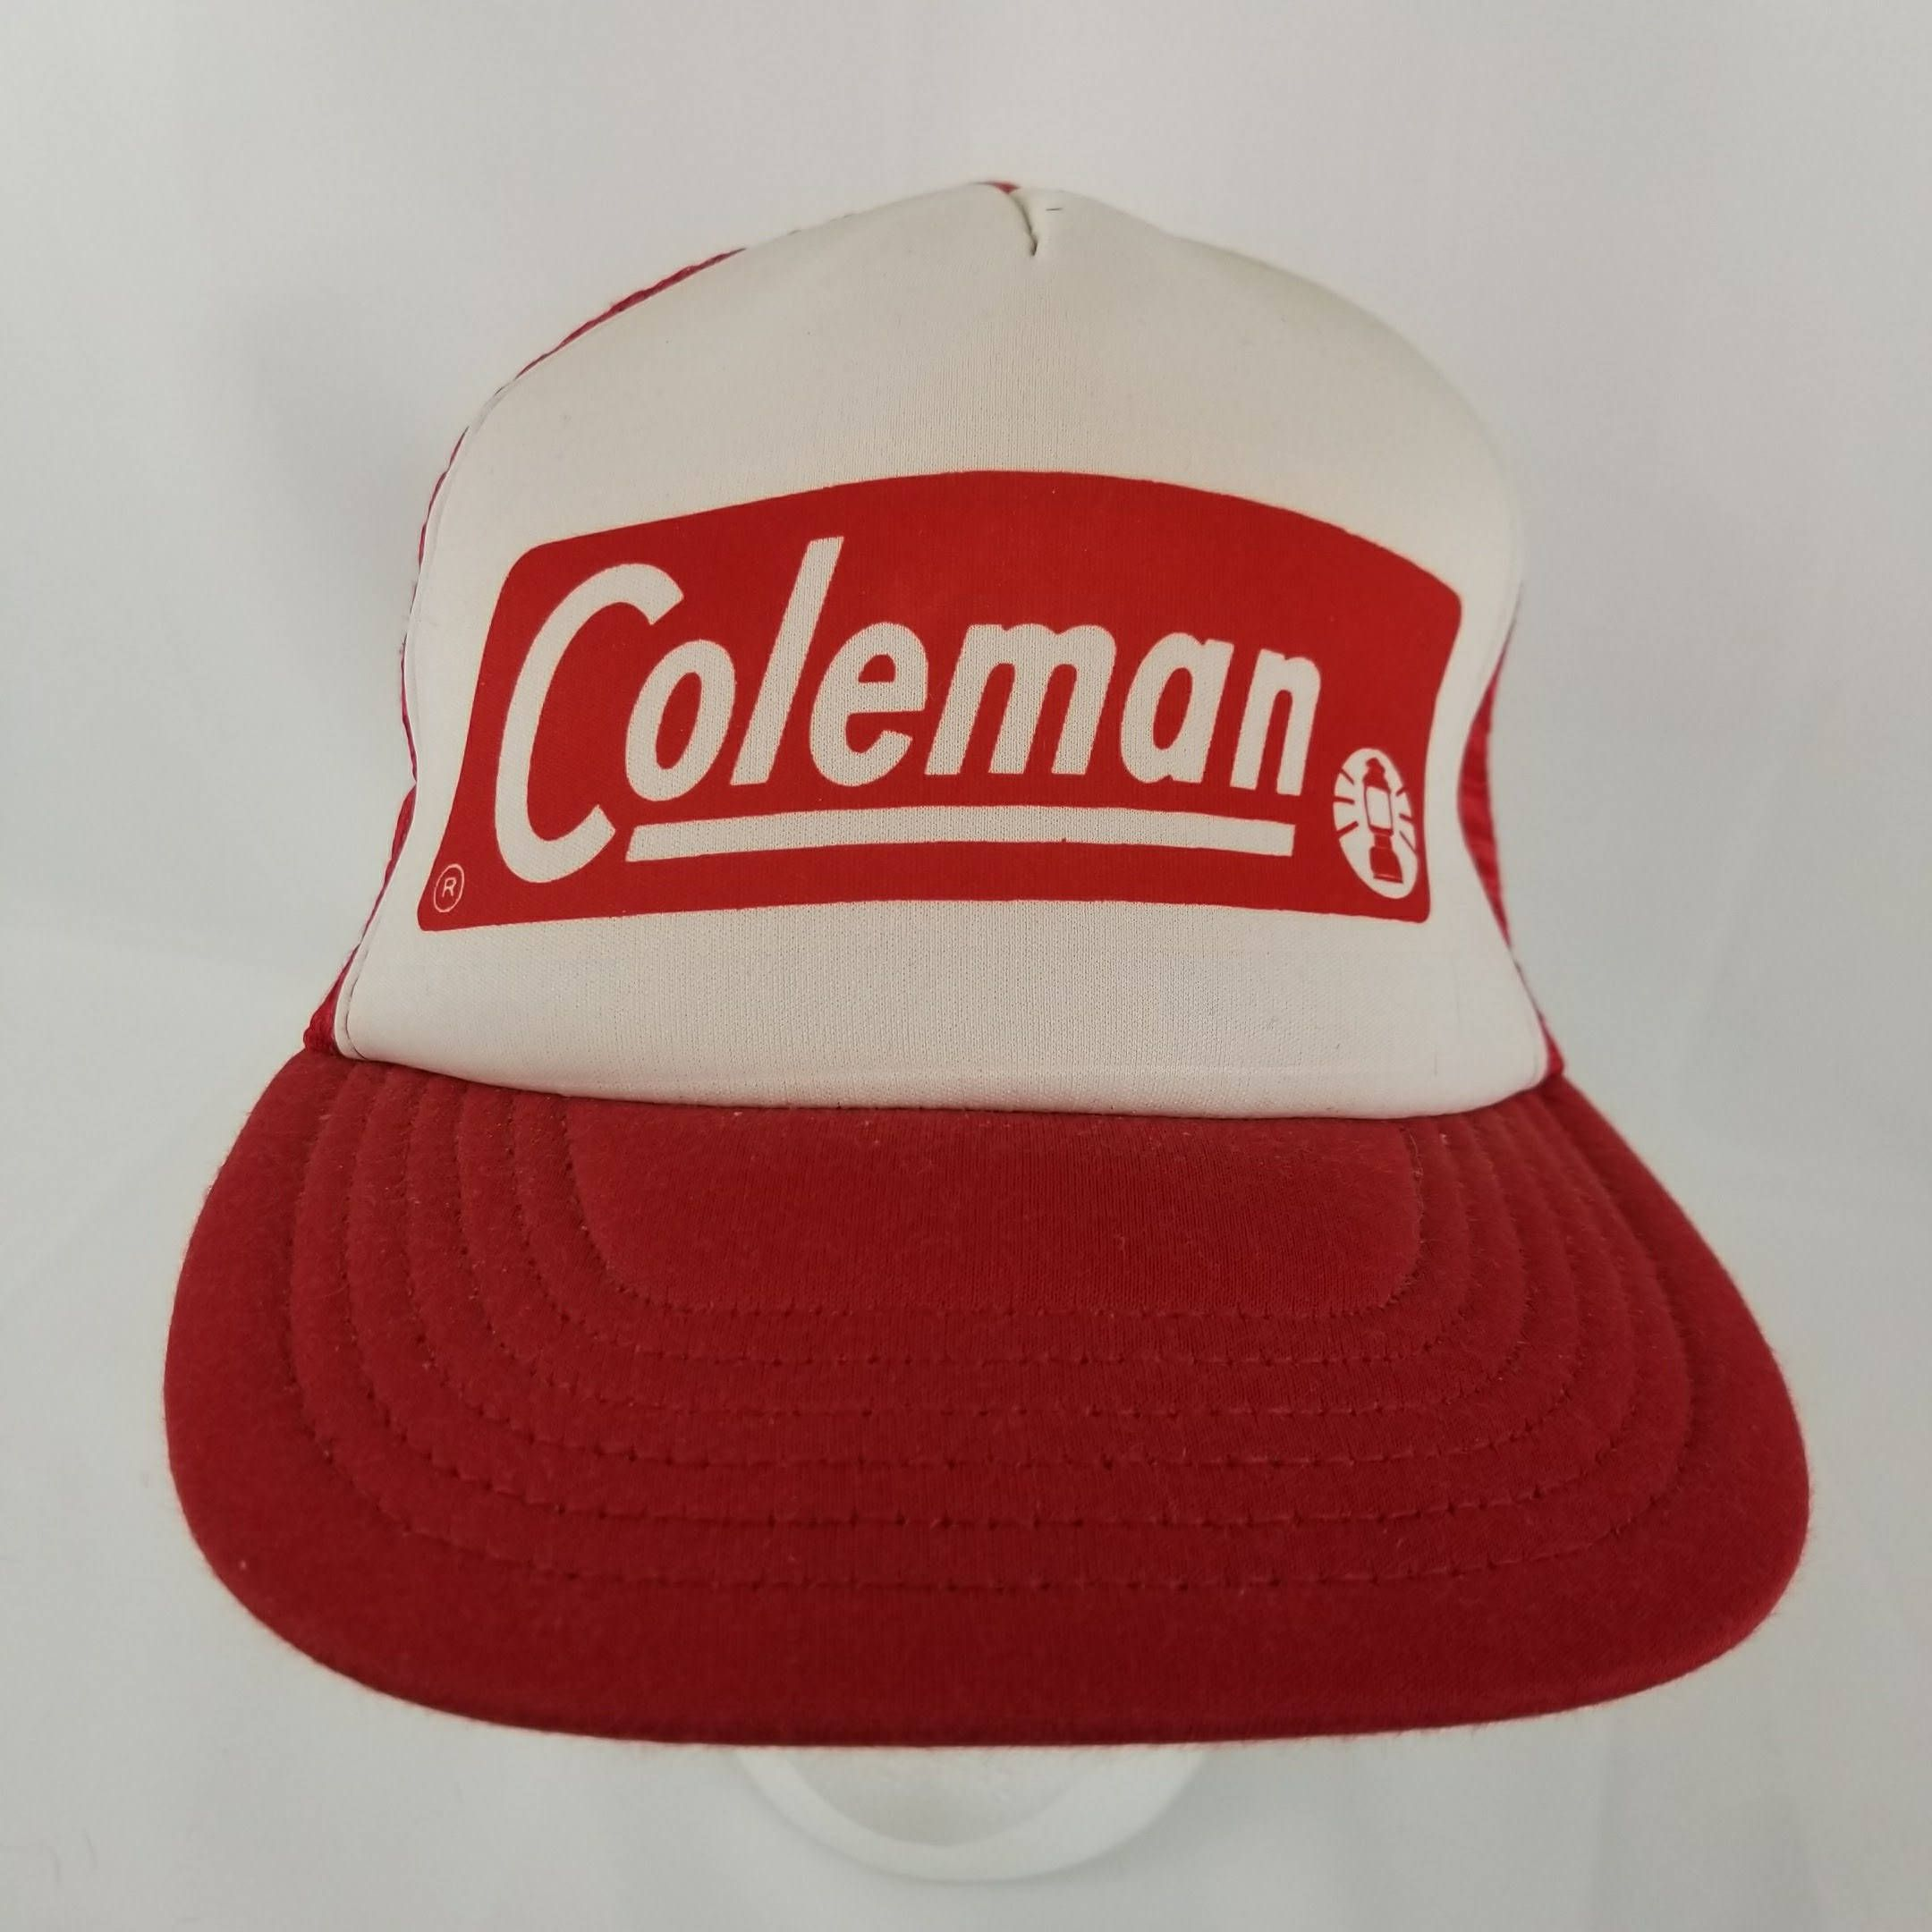 af06069d368 Vintage Coleman Trucker Hat Mesh Snapback Cap Red Outdoors Camp Hiking  Lantern by TraSheeWomen on Etsy  coleman  lantern  vintage  snapback   truckerhat ...